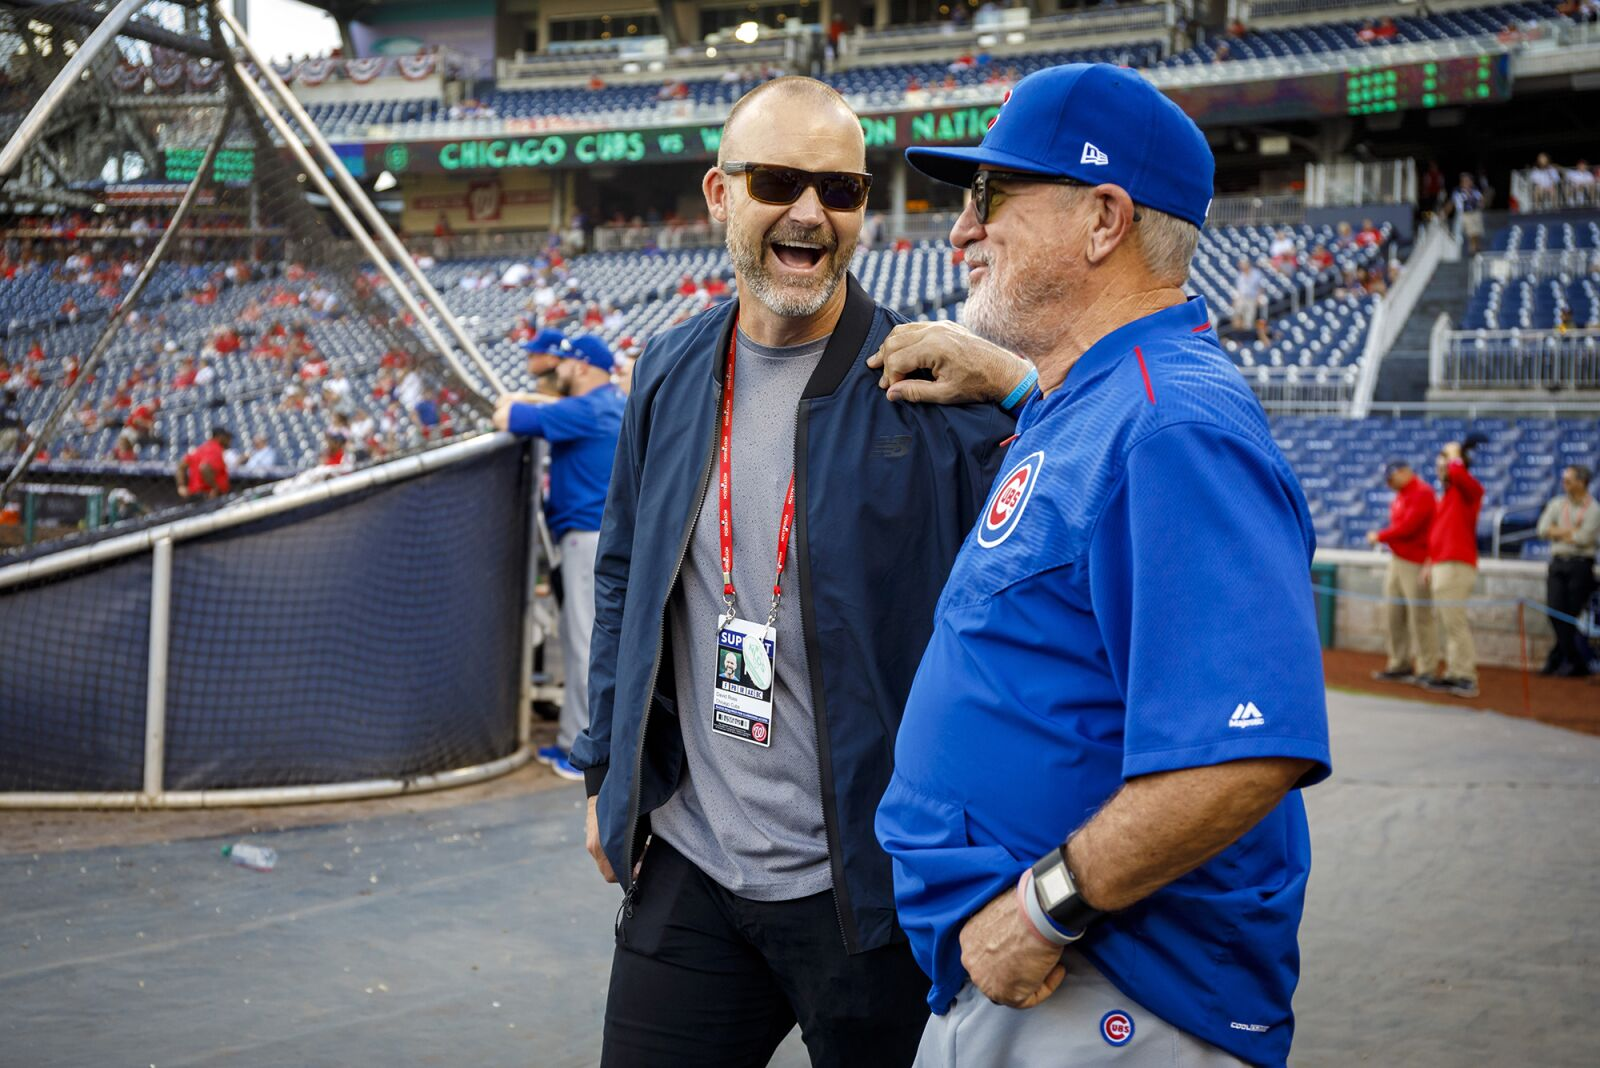 Chicago Cubs: Why David Ross not the right choice for manager